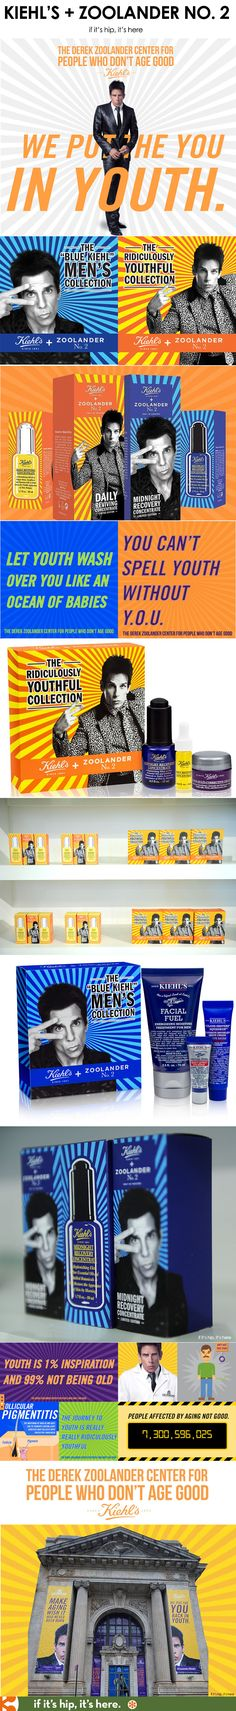 Brilliant co-op marketing. Kiehl's + Zoolander launch the Center For People Who Don't Age Good with great branding, product packaging and website. See more at if it's hip, it's here